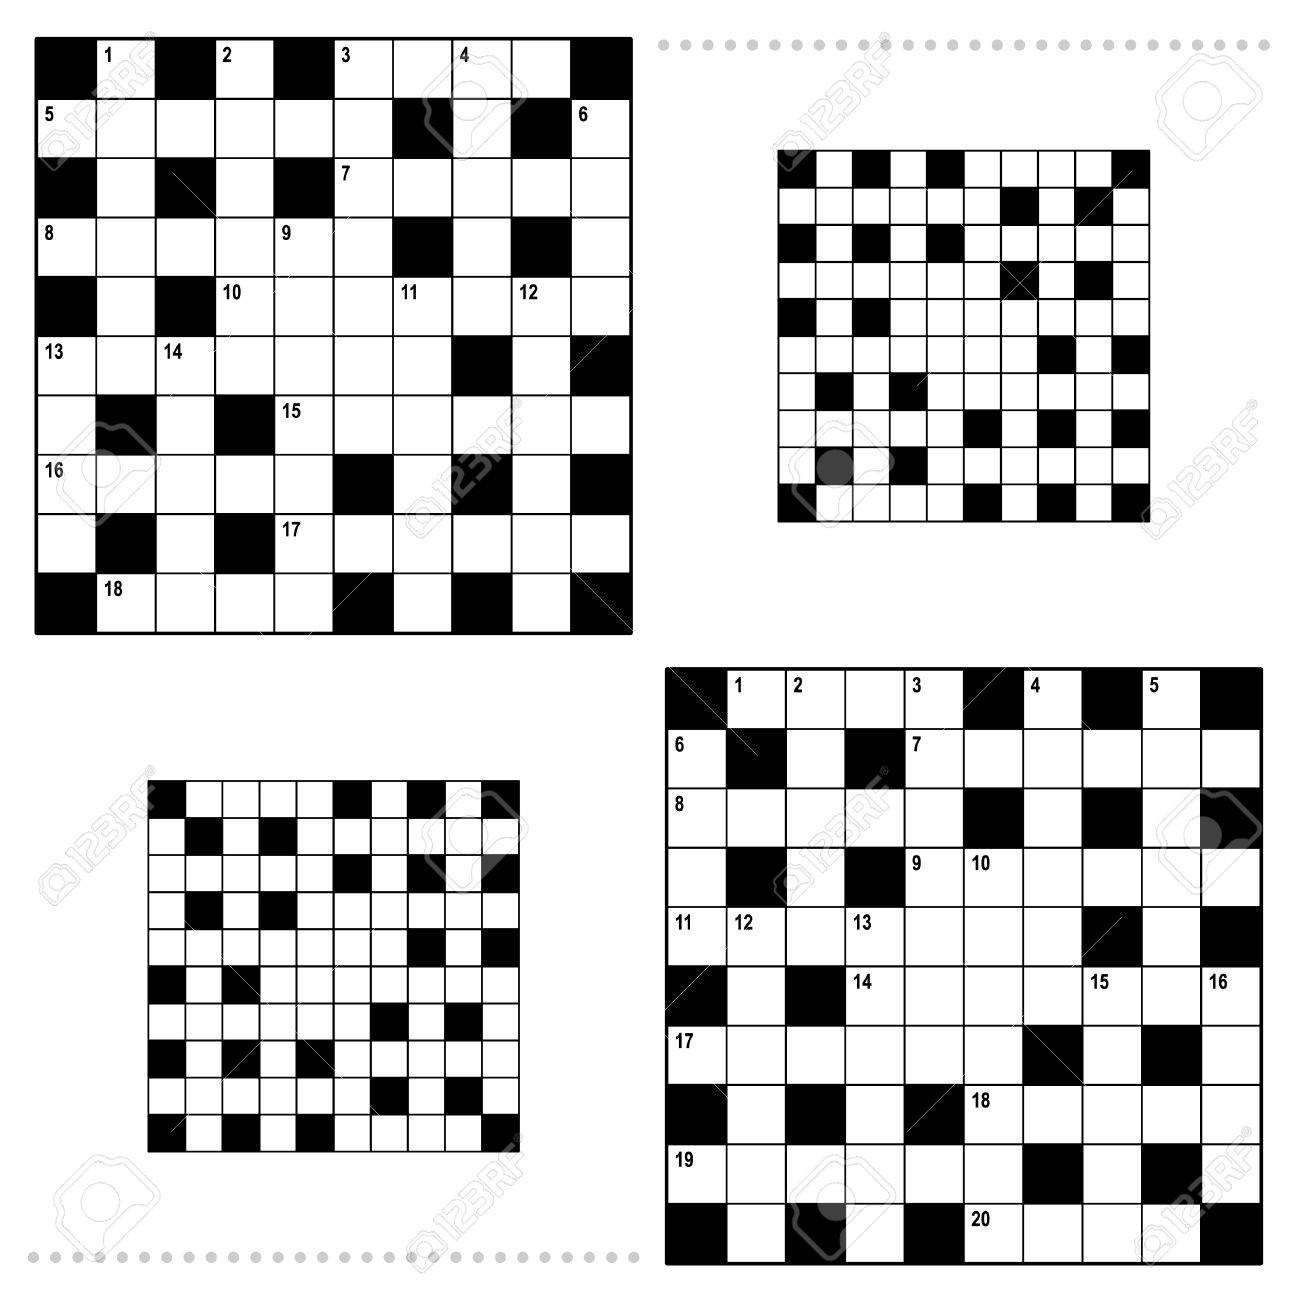 Real Size Crossword Puzzle Grids 10x10 Squares With Corresponding ...